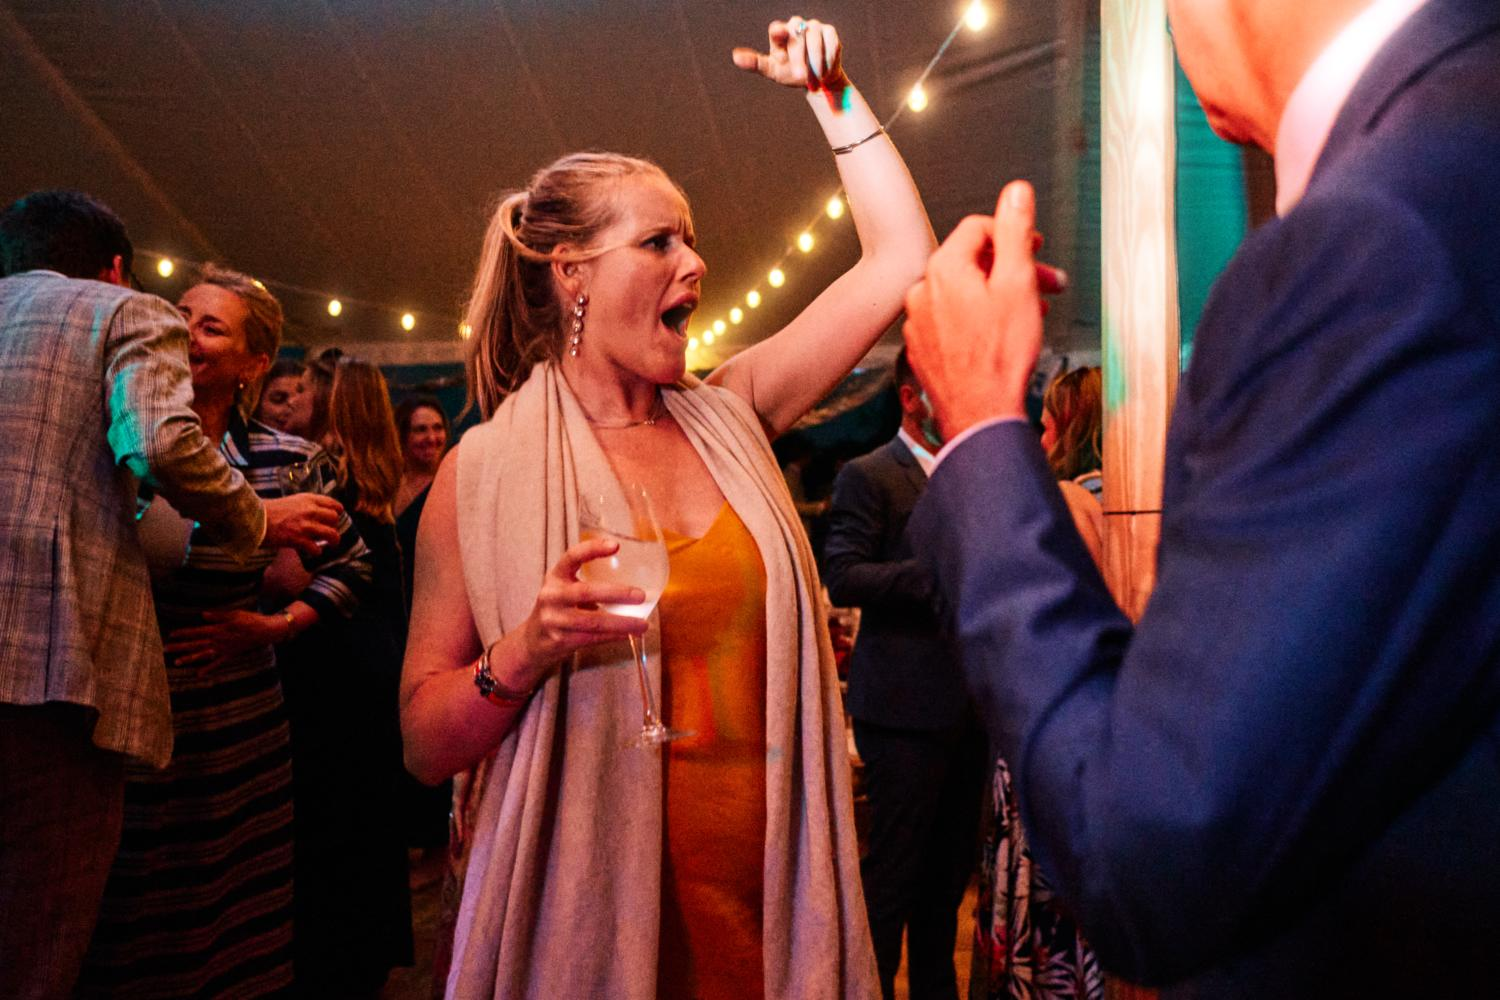 A woman gestures with her hand on the dancefloor